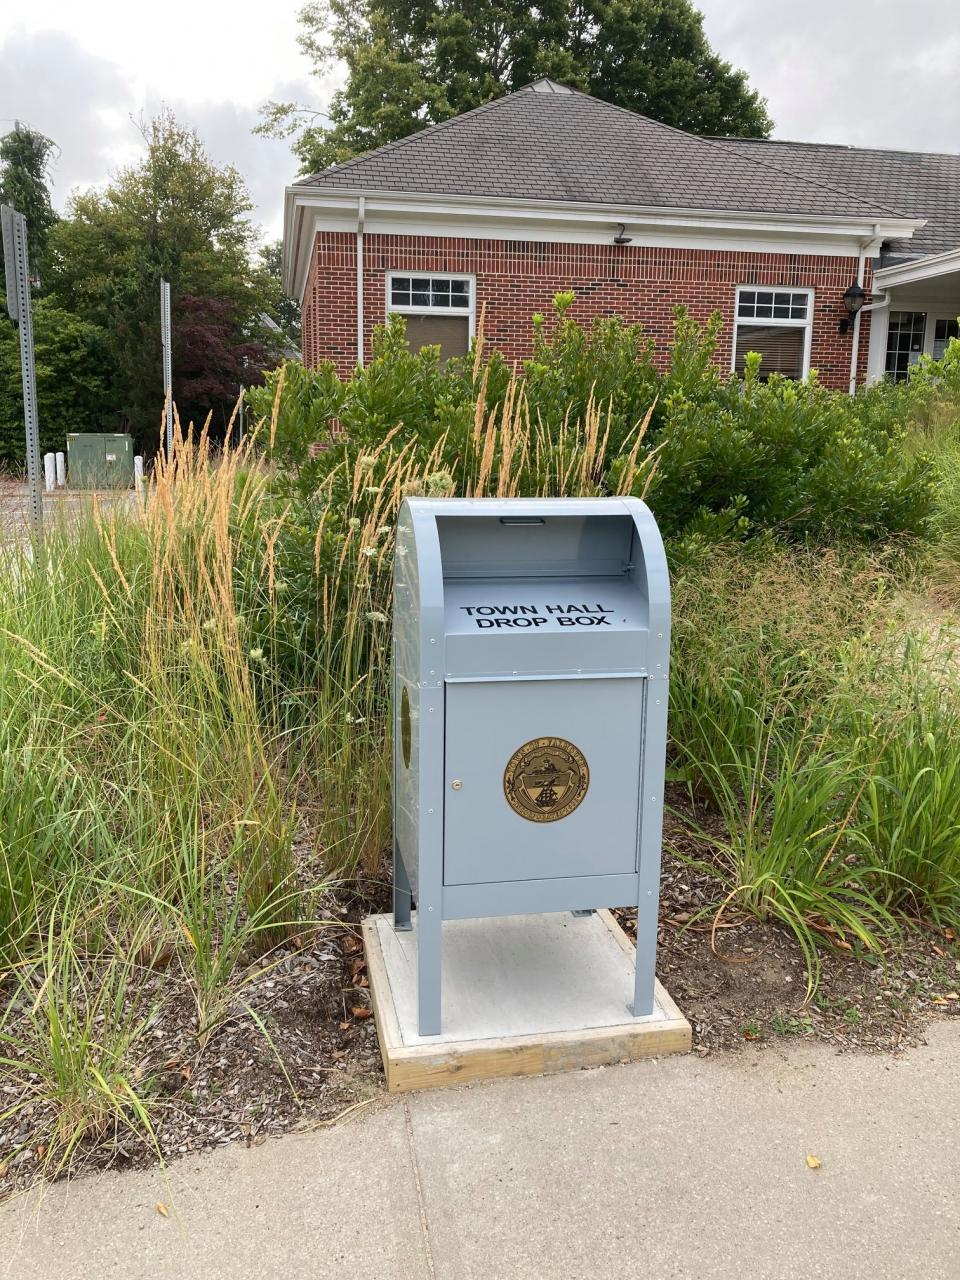 Town Hall Voting Drop Box